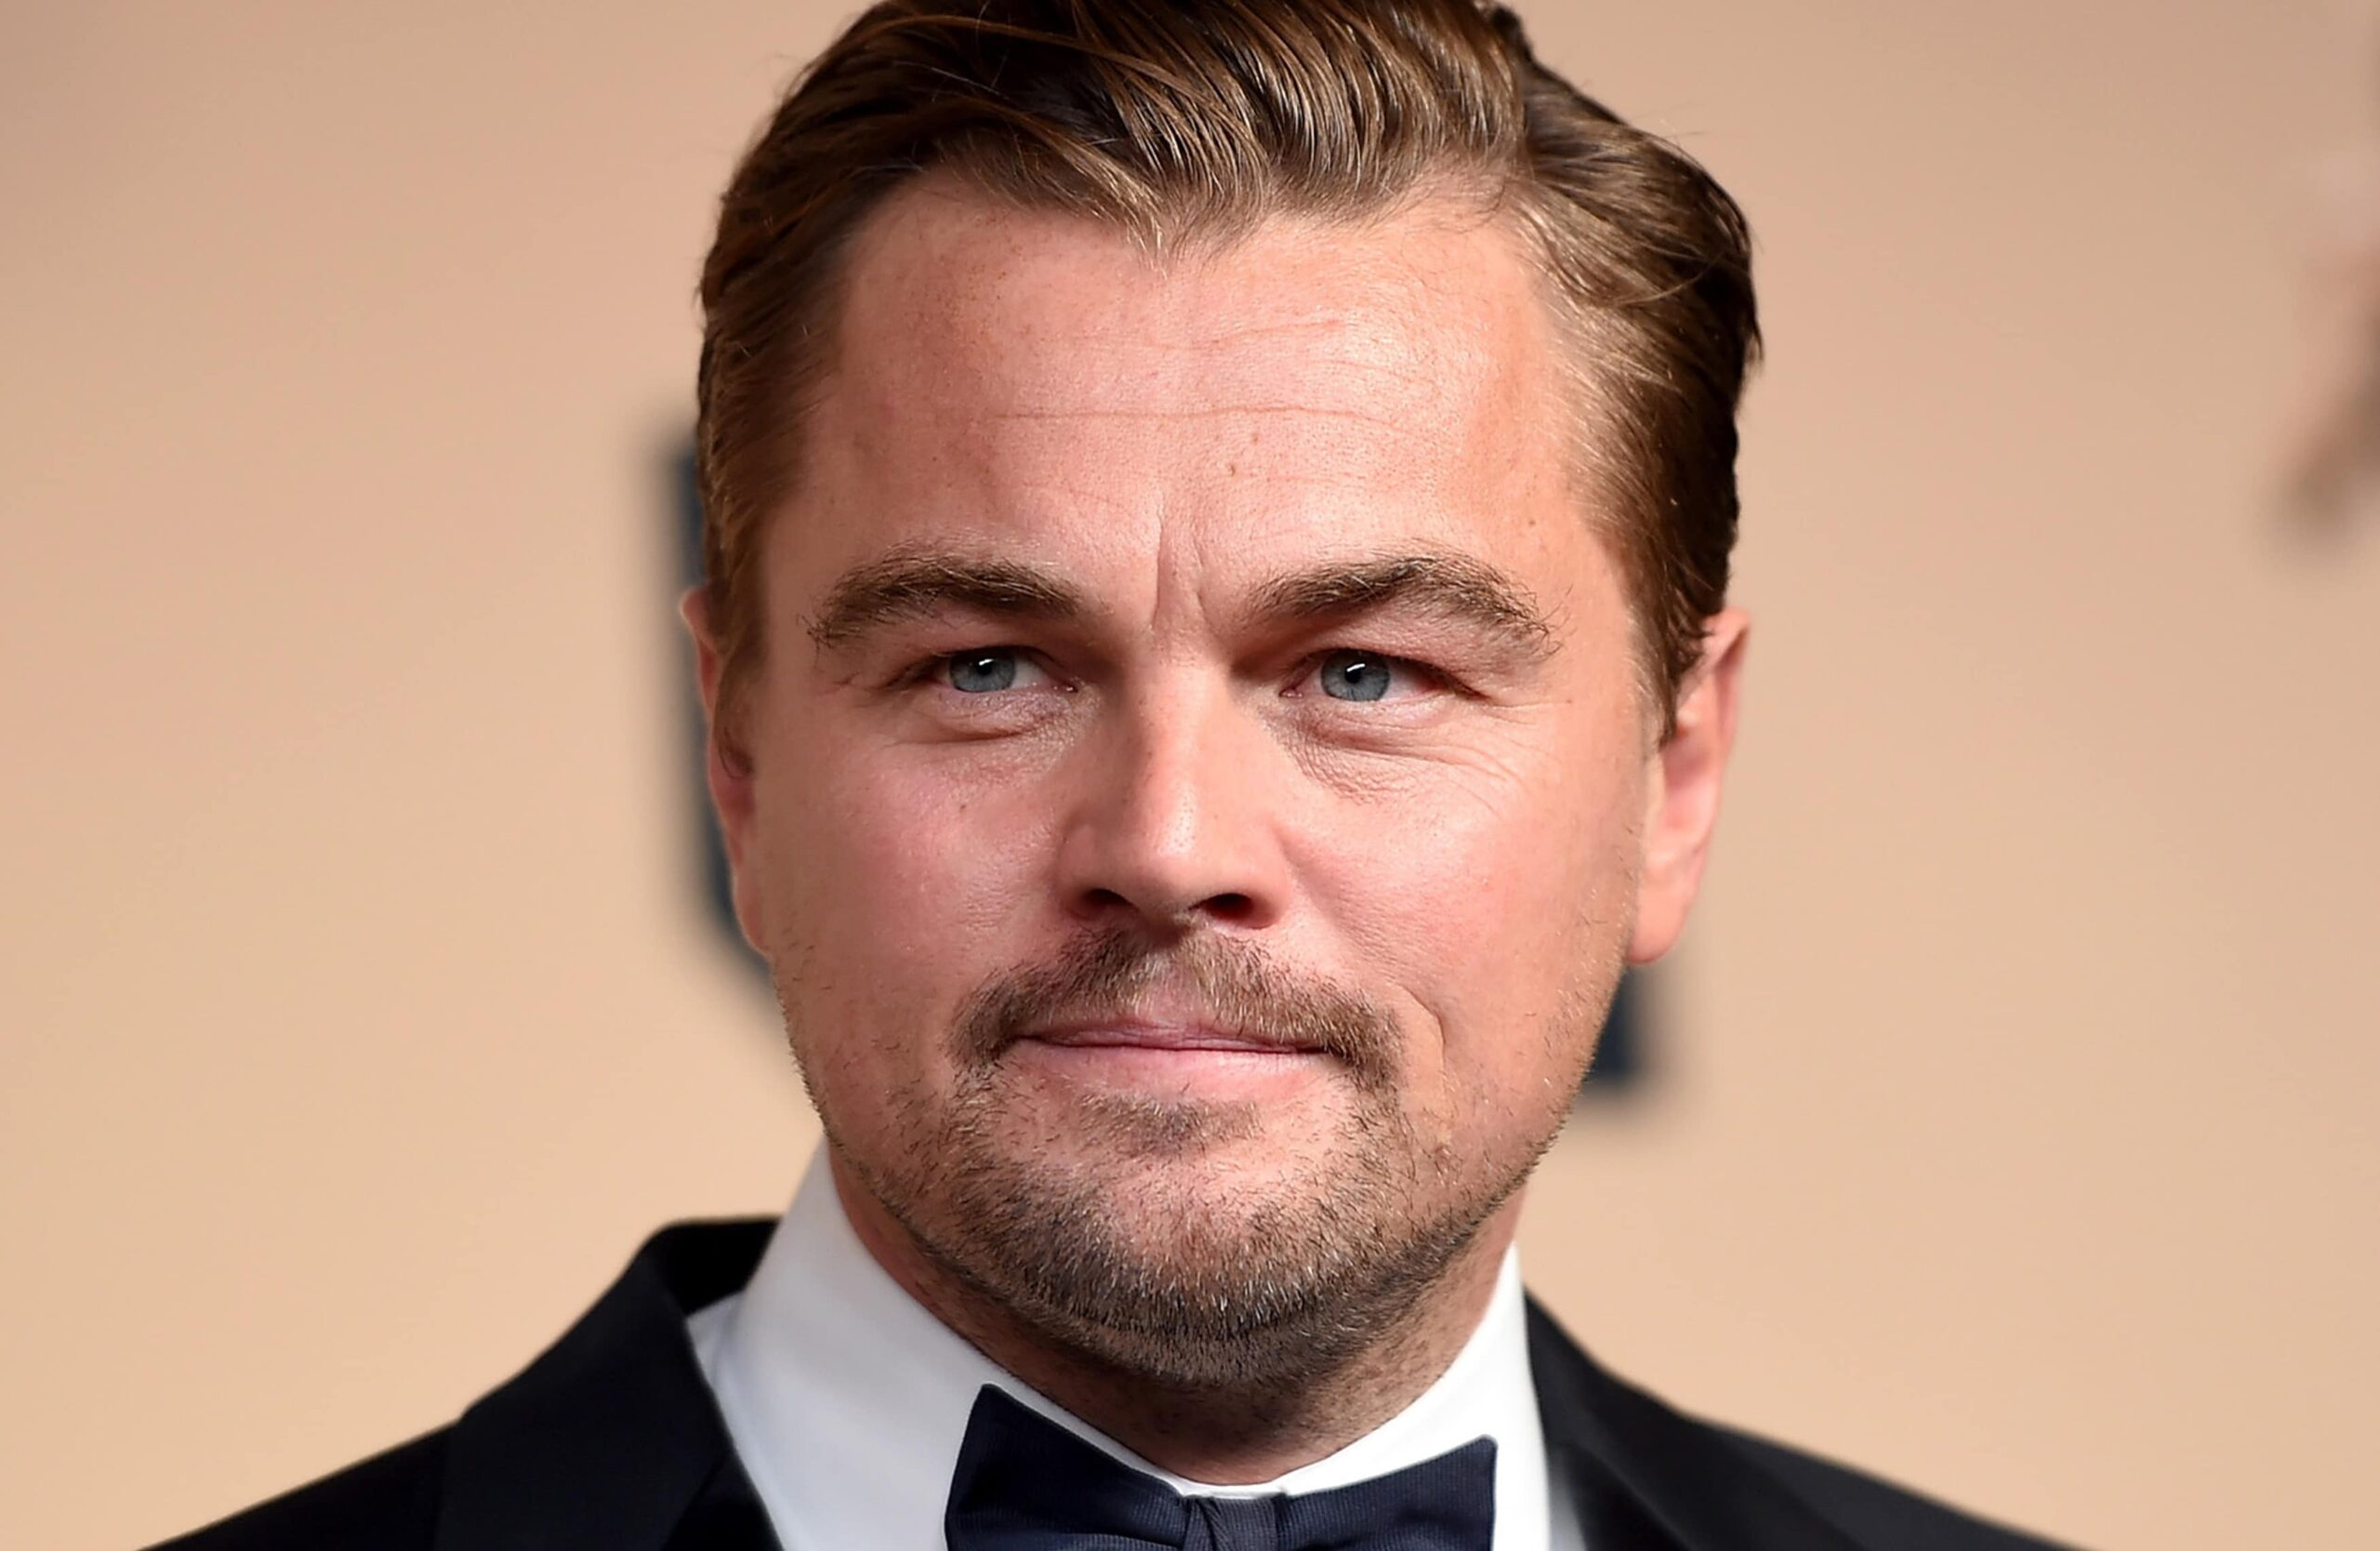 Leonardo DiCaprio Biography, Facts & Life Story Updated 2021